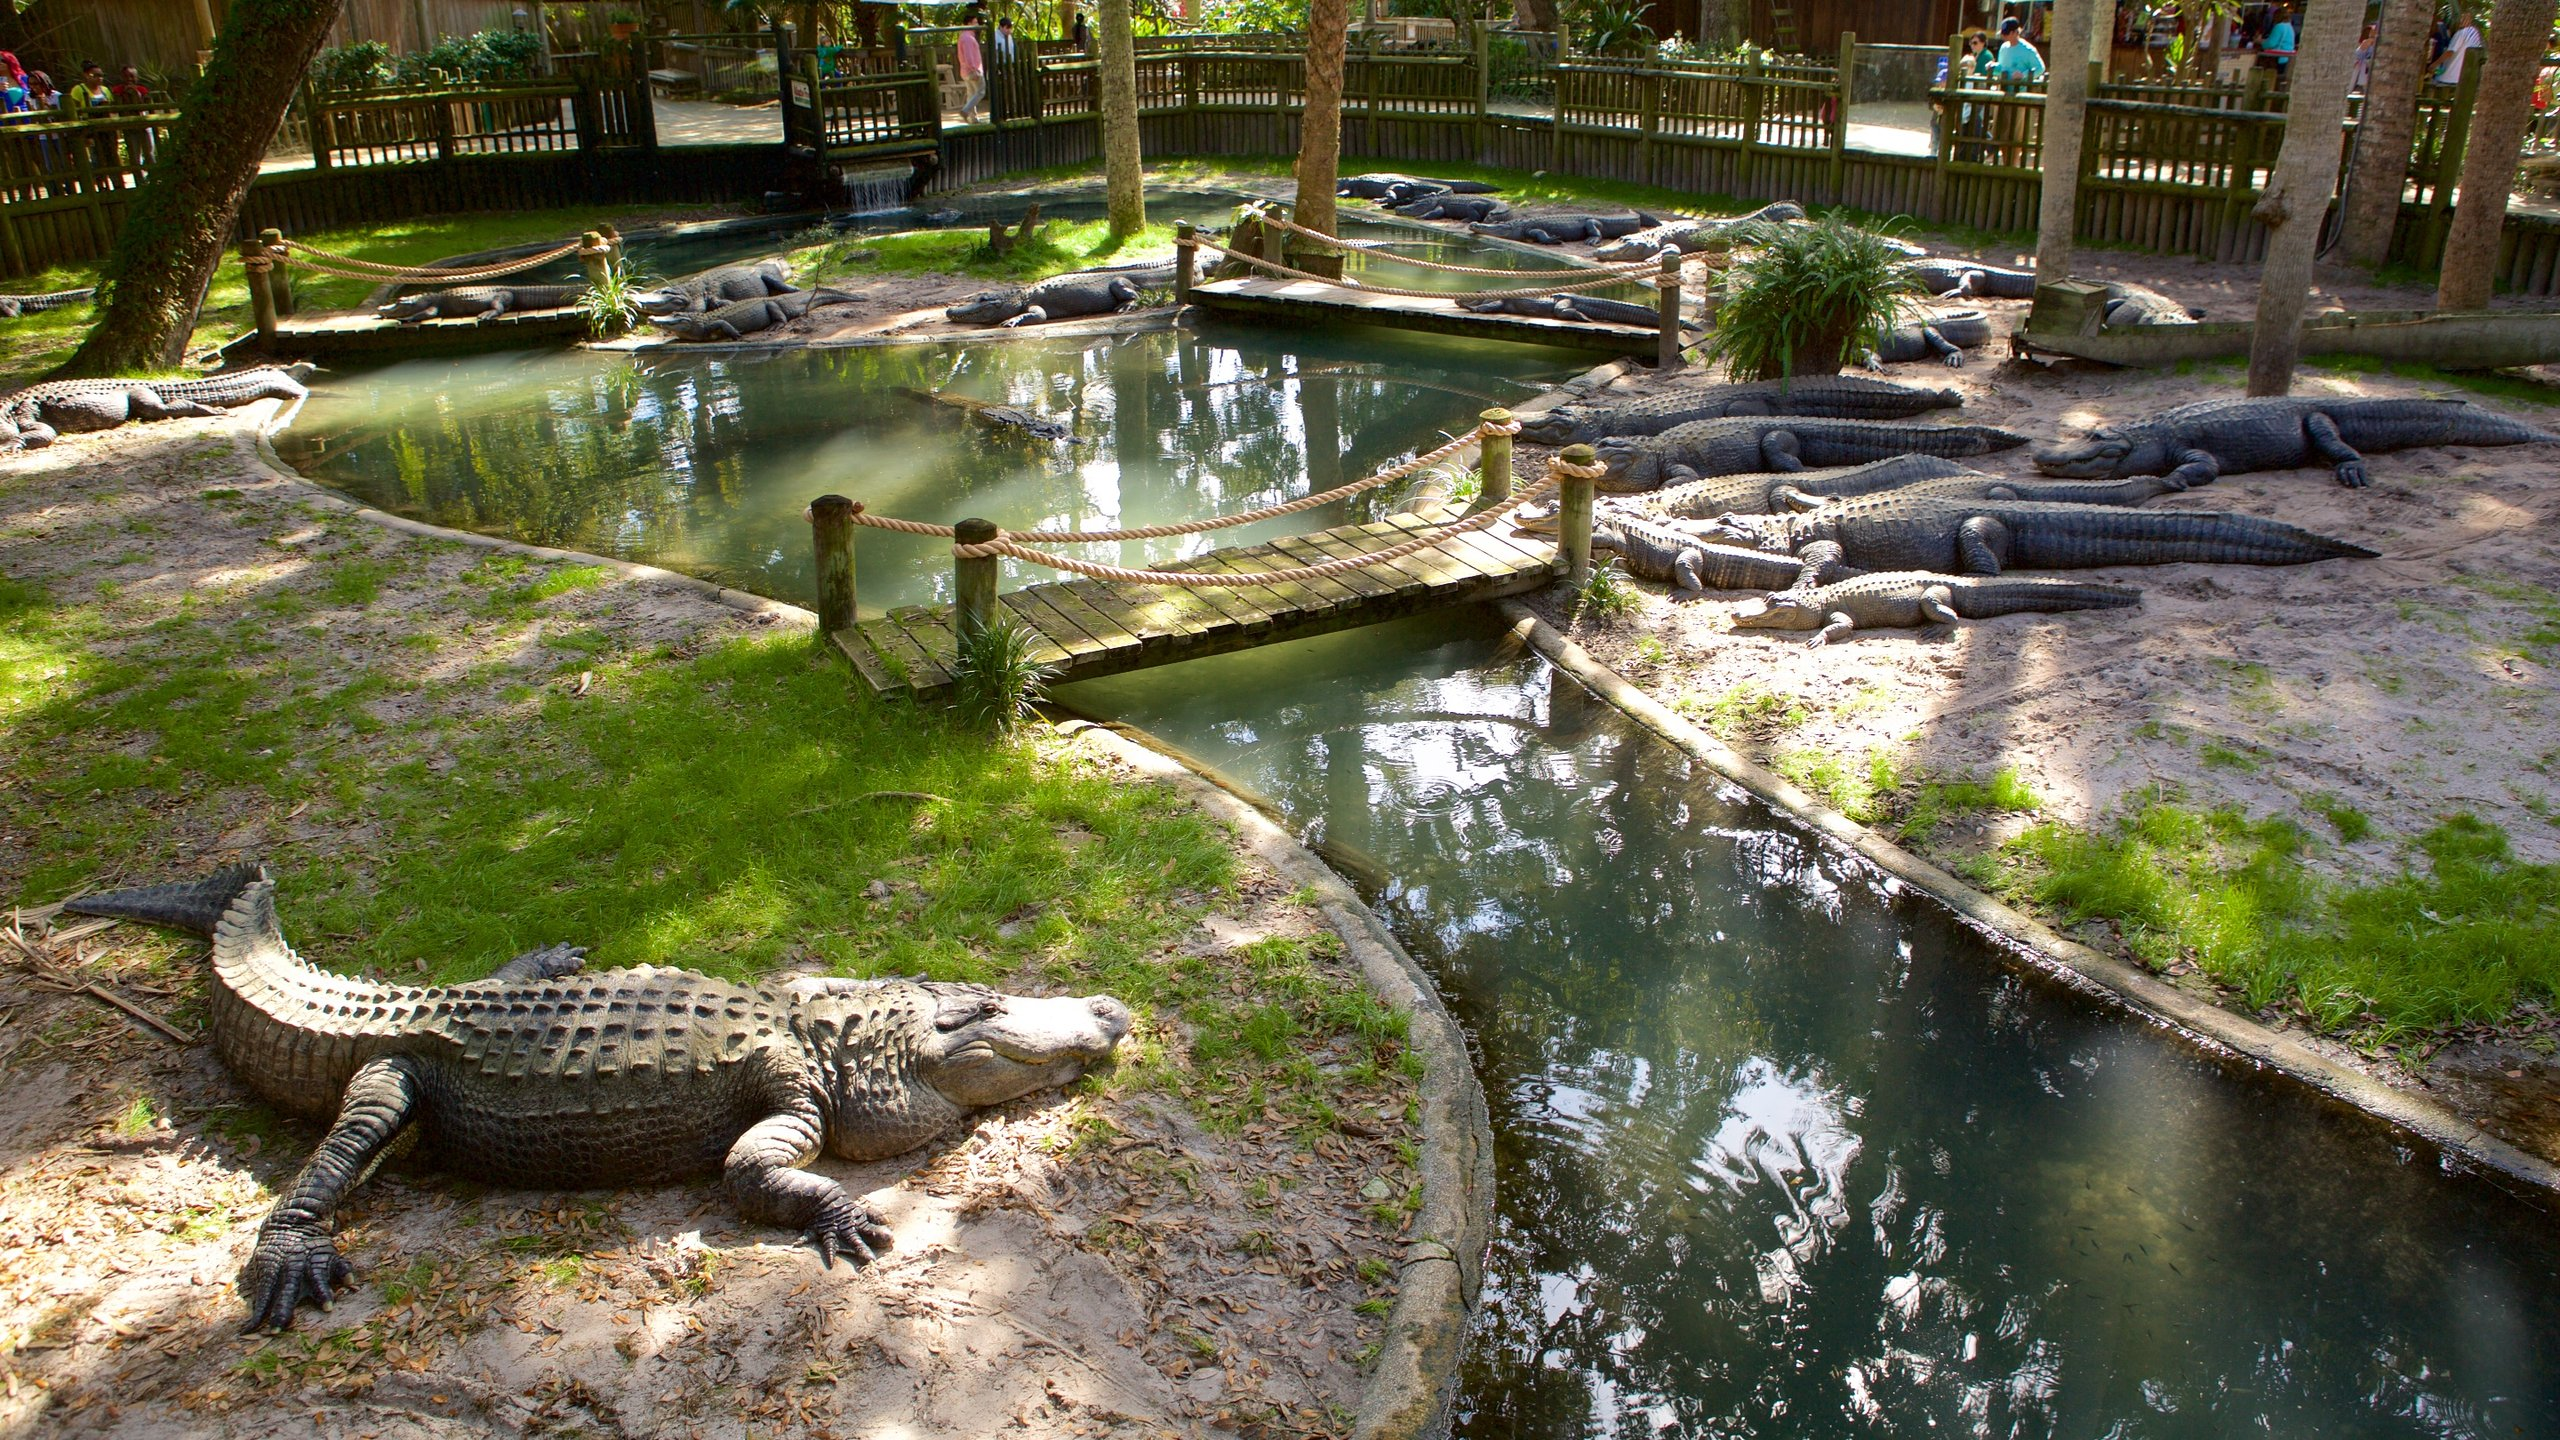 Feed and pet an alligator, hold a snake and meet a range of colorful and unusual reptiles and birds at one of Florida's longest-running attractions.